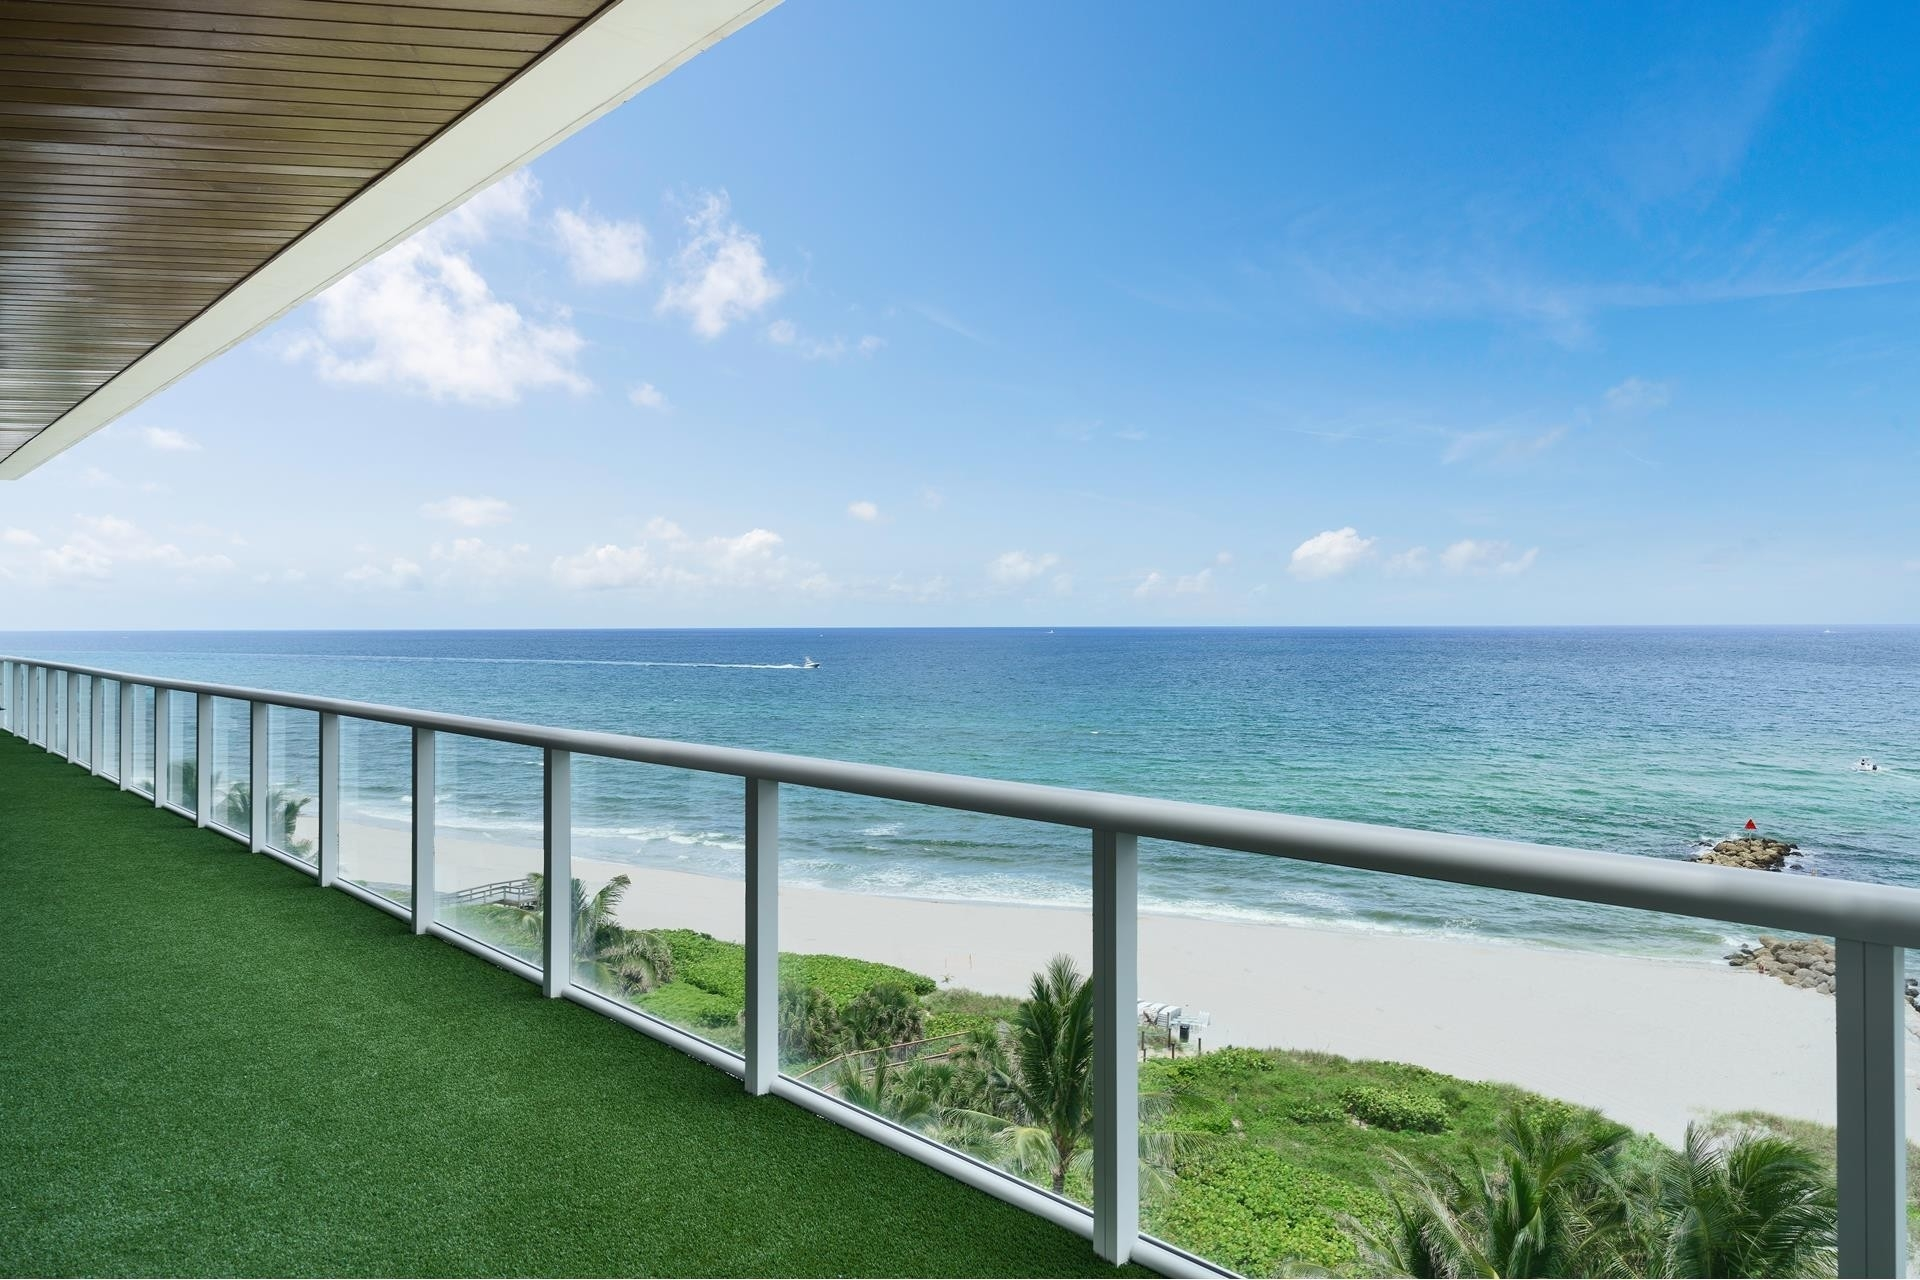 2. Condominiums for Sale at 1000 S Ocean Boulevard, 603+604 Southeast Boca Raton, Boca Raton, FL 33432